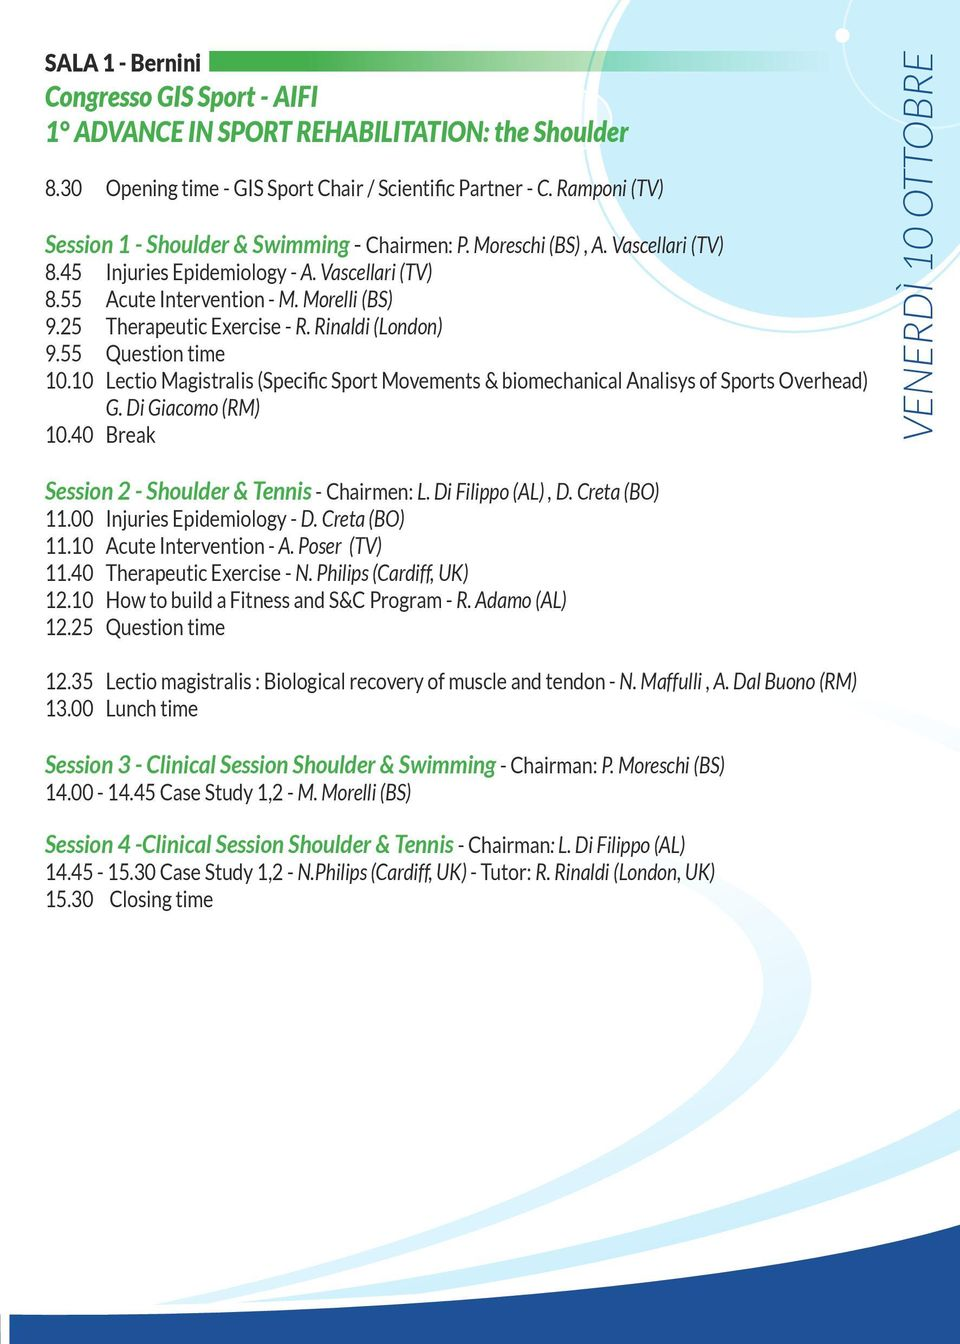 25 Therapeutic Exercise - R. Rinaldi (London) 9.55 Question time 10.10 Lectio Magistralis (Specific Sport Movements & biomechanical Analisys of Sports Overhead) G. Di Giacomo (RM) 10.